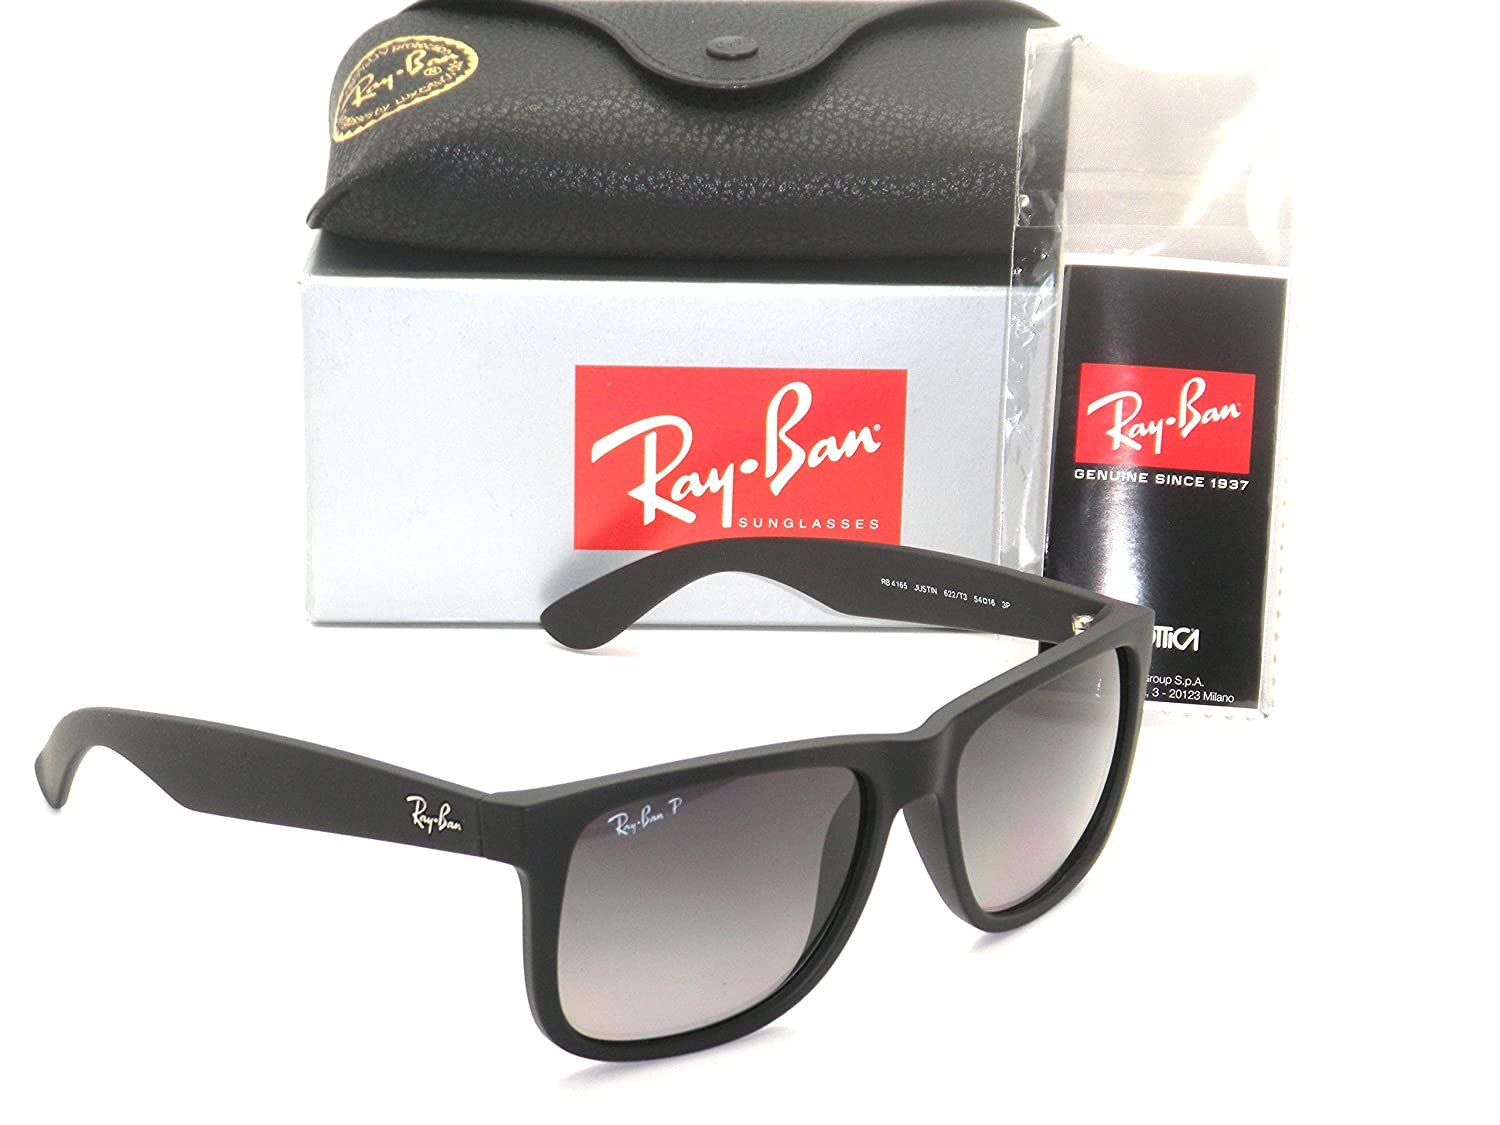 2019 wholesale ray bans 90 day fiance discount